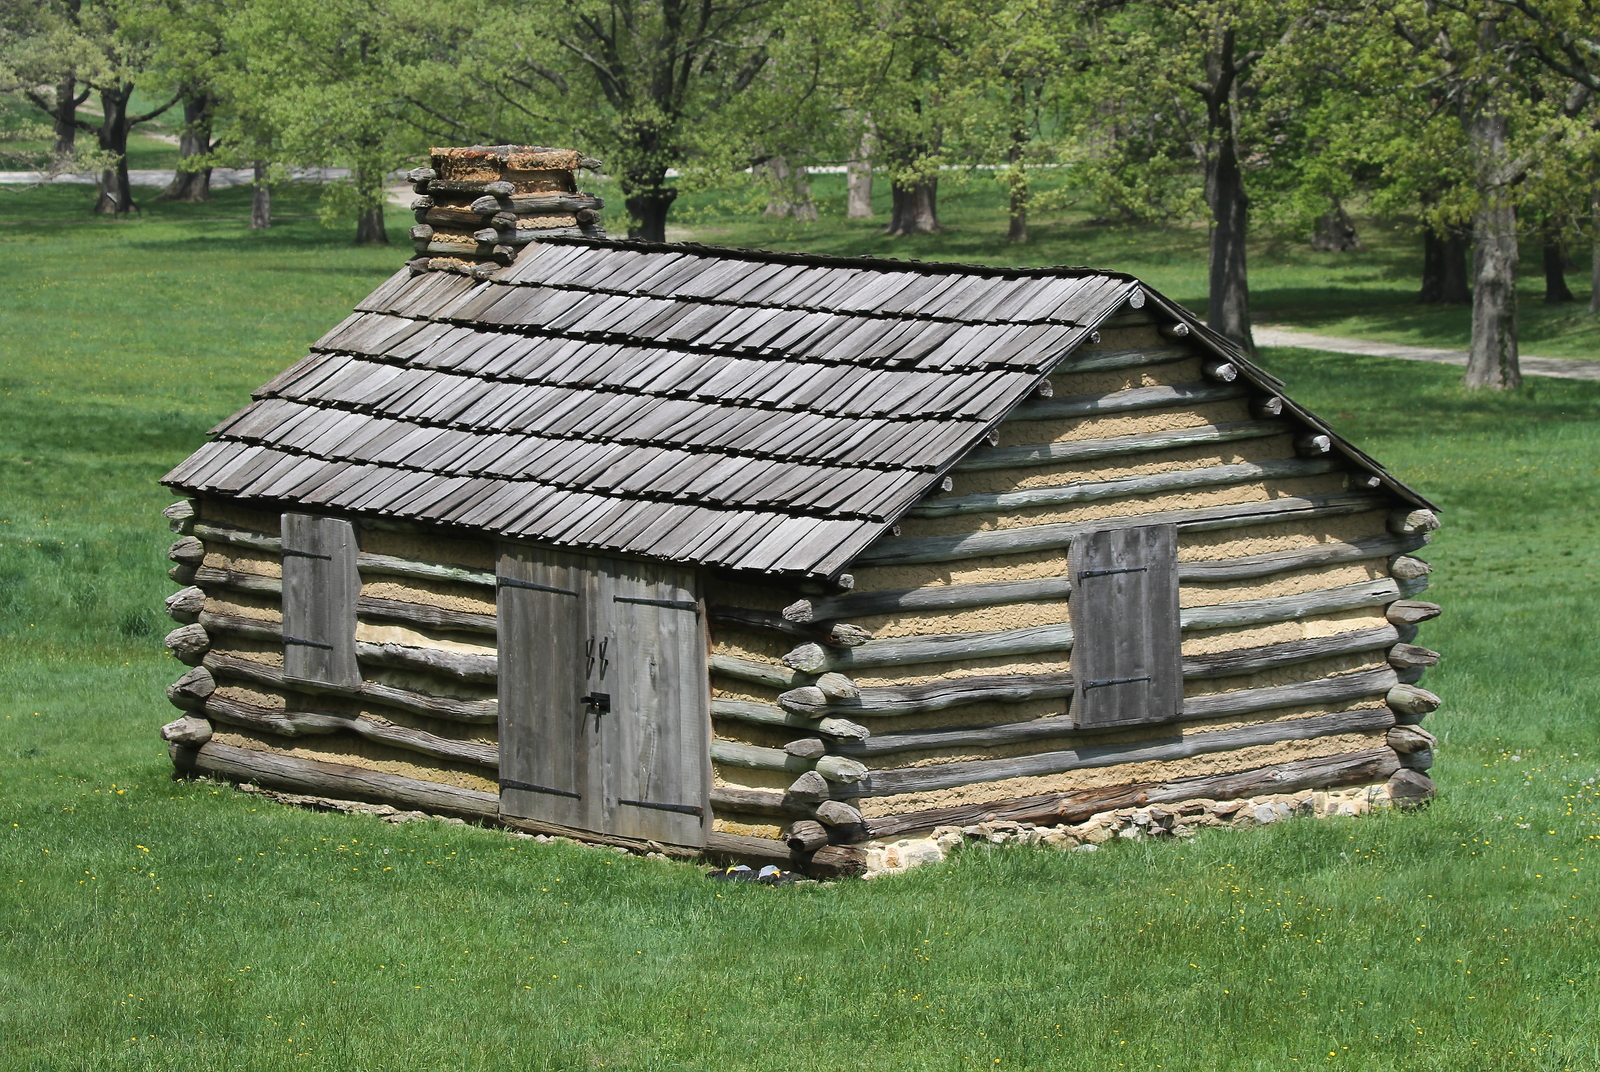 Log Cabin In Valley Forge National Park 13 x 19 Unmatted Photograph